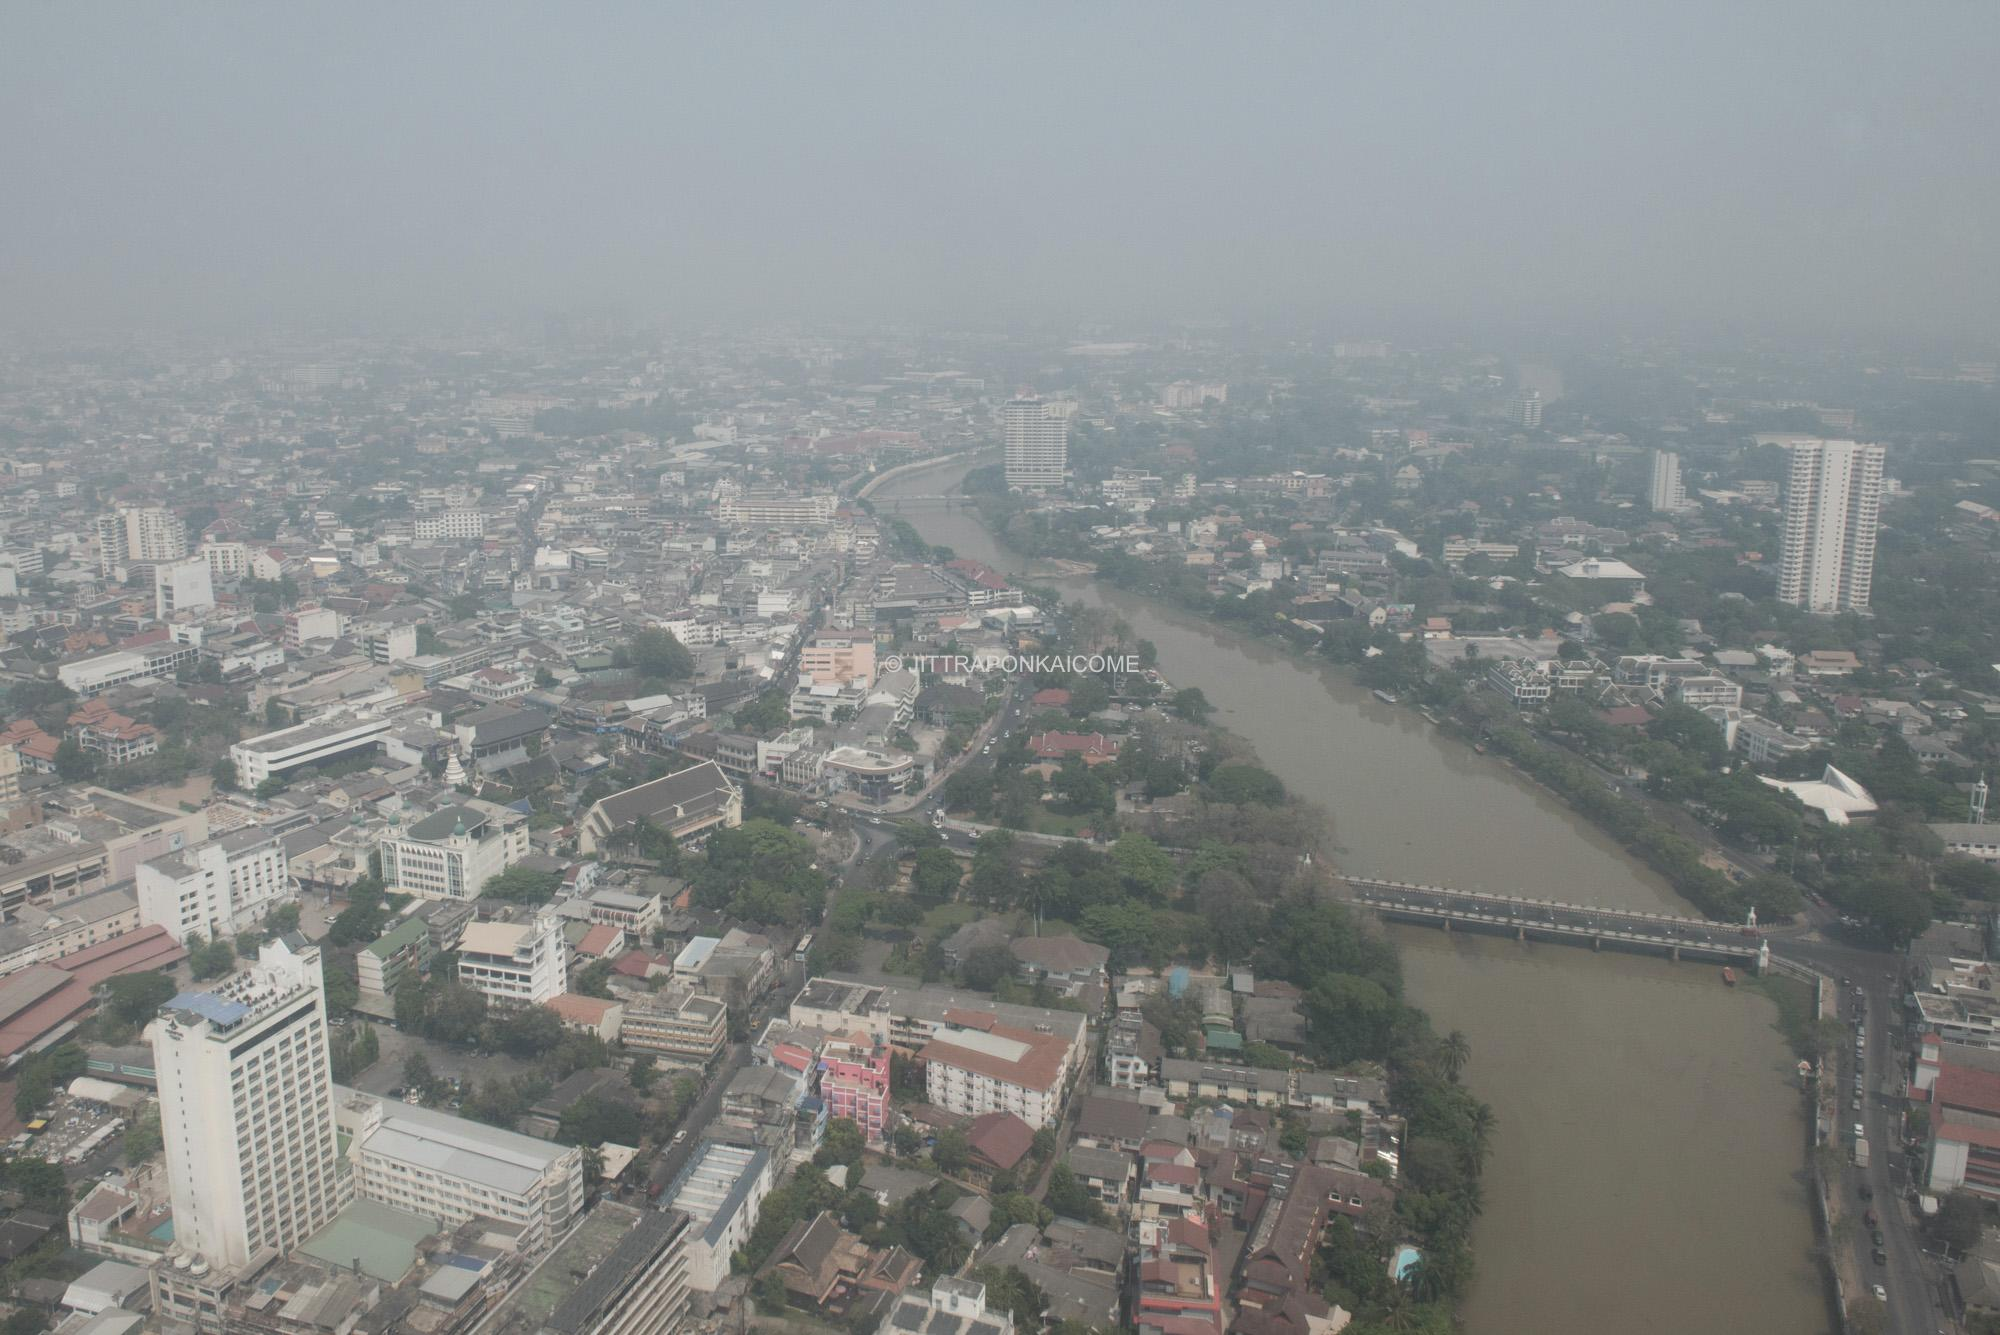 The Smoke crisis in the northern region affects the economy of cities such as Chiang Mai, which rely heavily on tourism. There is a tendency for this issue to intensify every year. The Chiang Mai sky is covered by fine particles of PM2.5, and the quantity of these dispersed fine particles has tremendously surpassed its critical safety limit.